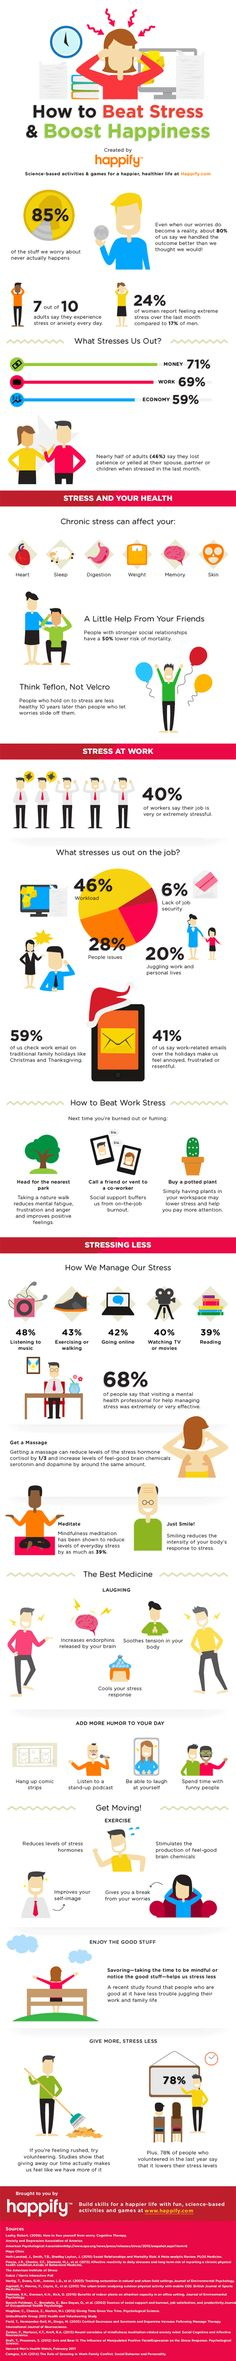 How To Be Happy And Beat Stress. Stress is harmful to anyone, but for those with anxiety, the stress can seem overwhelming. Here are some tips to manage stress and decrease anxiety. Ways To Reduce Stress, Stress Less, Stress And Anxiety, Stress Free, Stress Relief, Work Stress, How To Handle Stress, Anxiety Relief, Health And Wellness